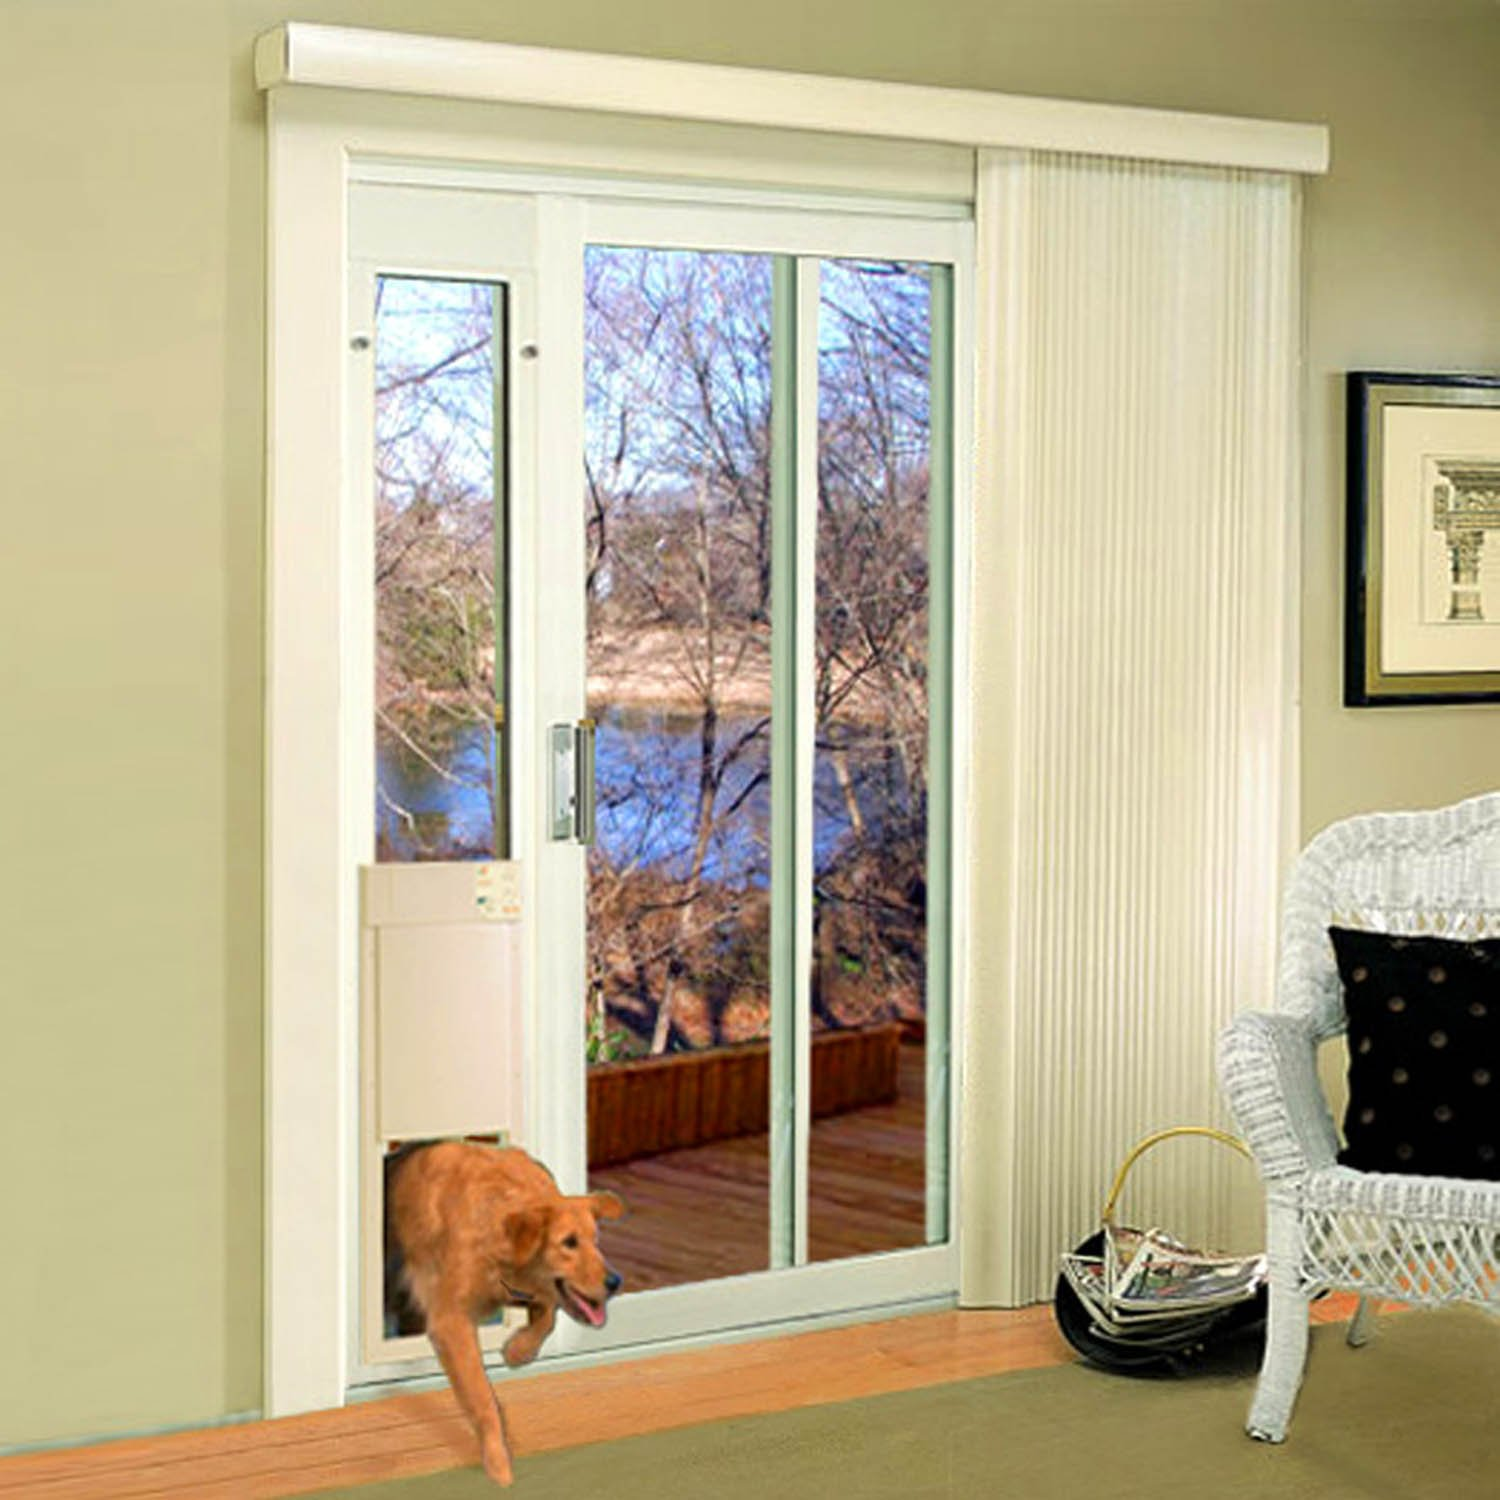 Lovely High Tech Pet Power Pet Door Sliding Glass Door Insert | Petco